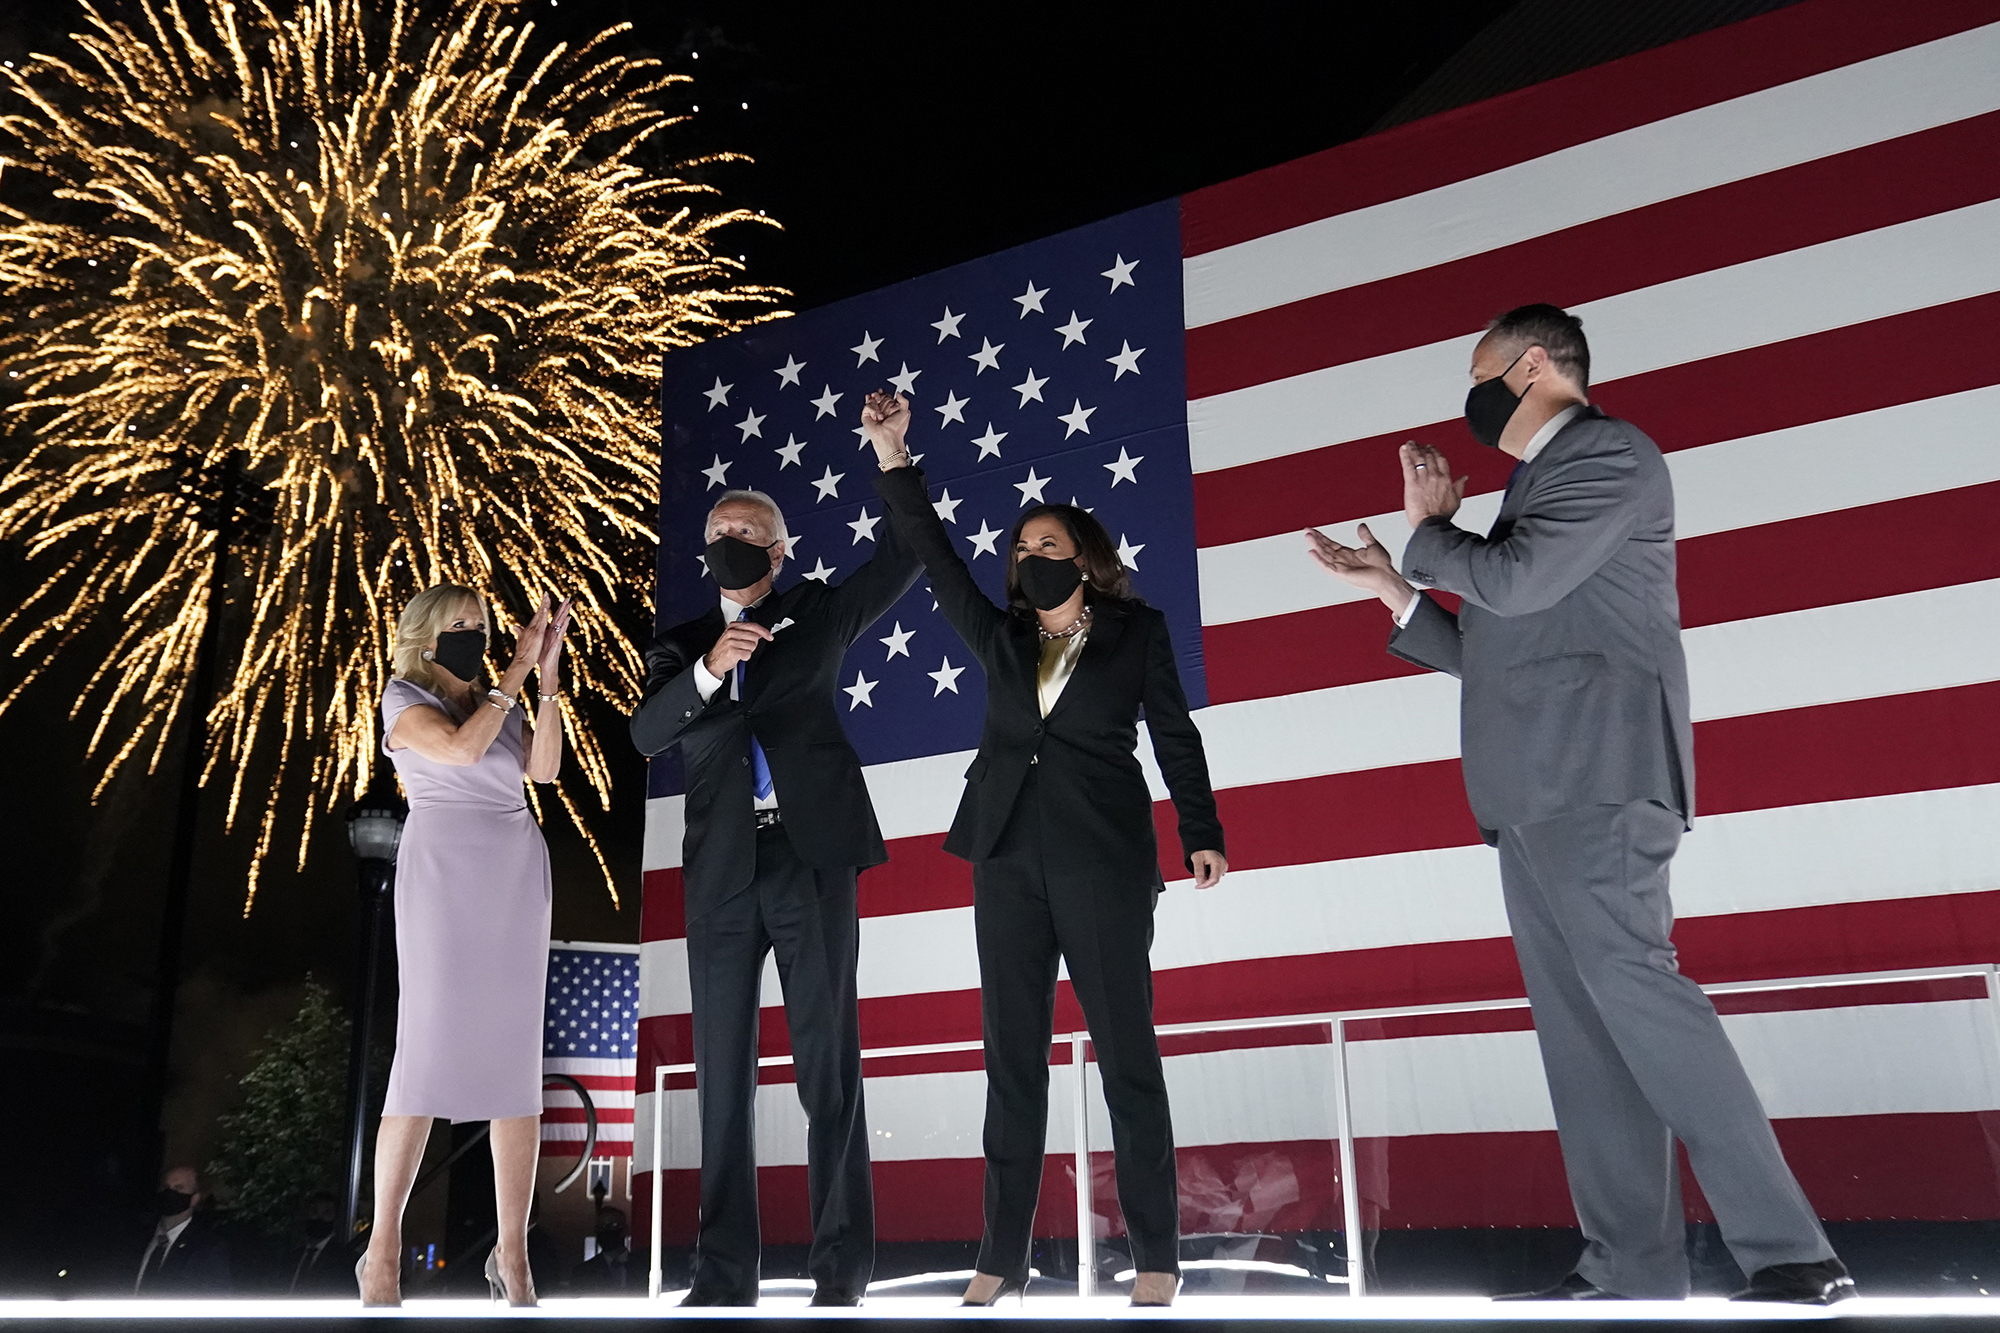 Democratic presidential candidate former Vice President Joe Biden, and his wife Jill Biden, watch fireworks with Democratic vice presidential candidate Sen. Kamala Harris, and her husband Doug Emhoff, during the fourth day of the Democratic National Convention, Thursday, August 20 at the Chase Center in Wilmington, Delaware.